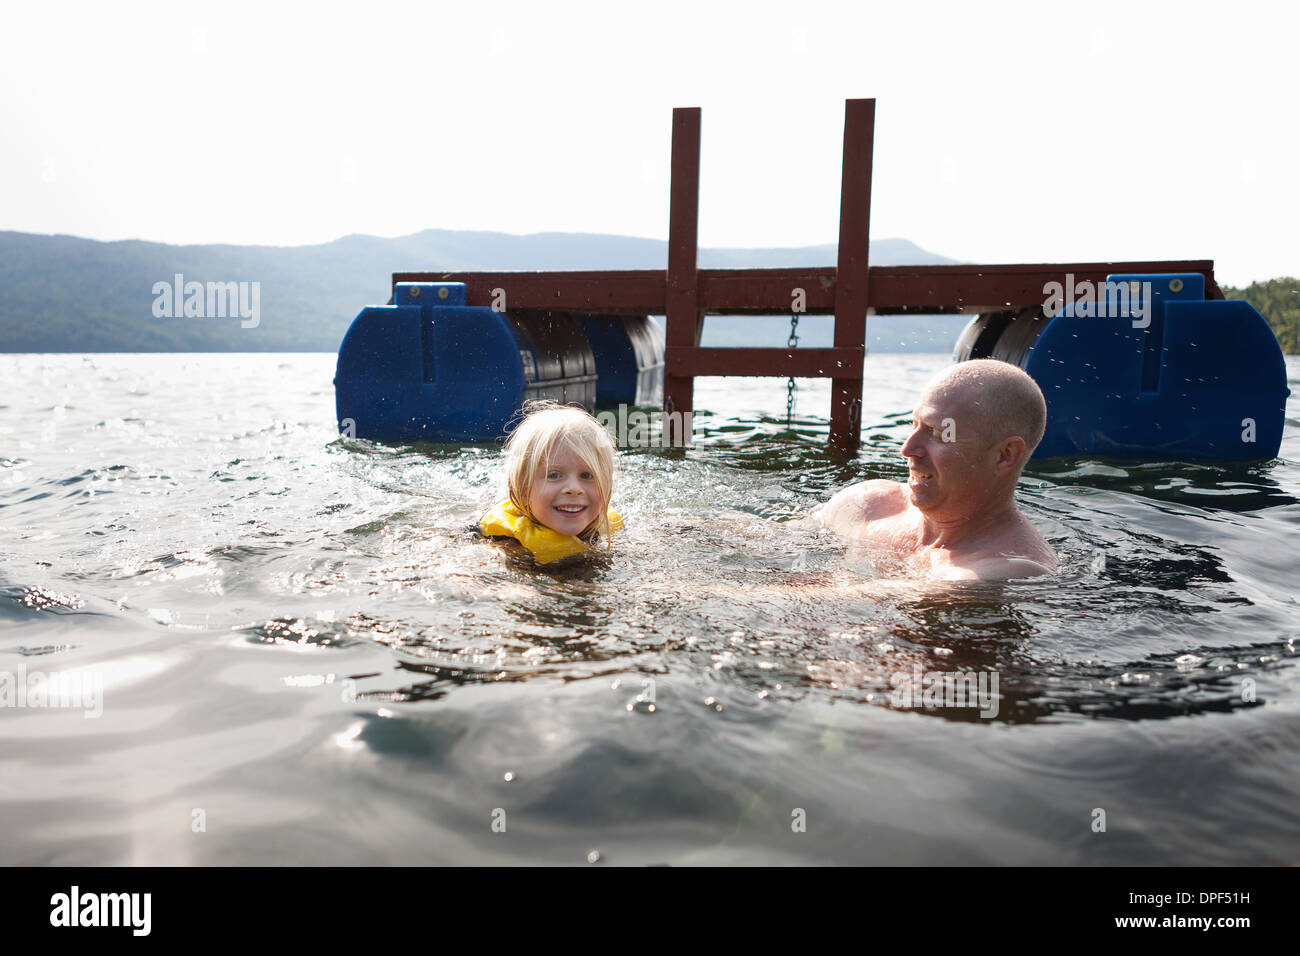 Father and toddler daughter swimming in lake, Silver Bay, New York, USA - Stock Image